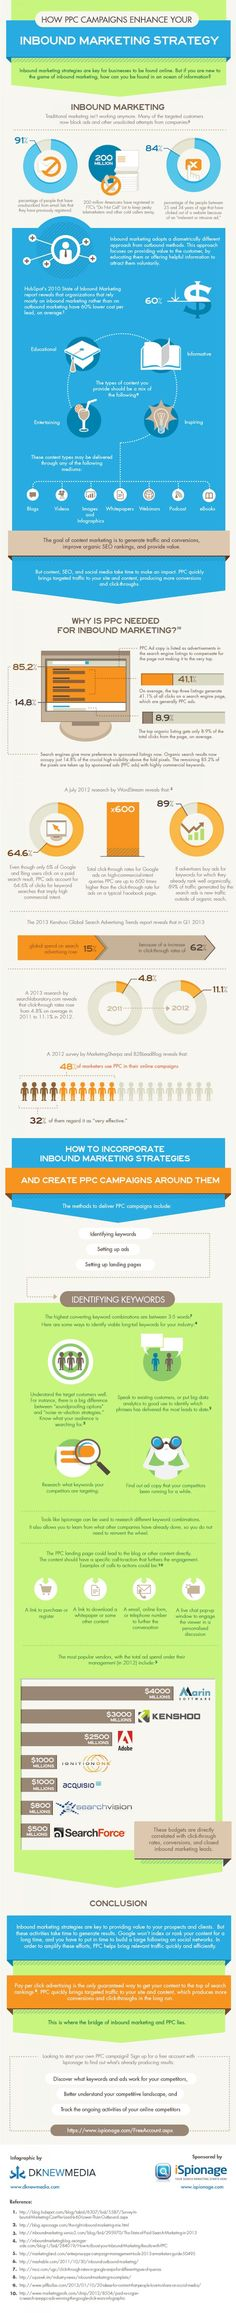 How PPC Campaigns Can Enhance Your Inbound Marketing Strategy